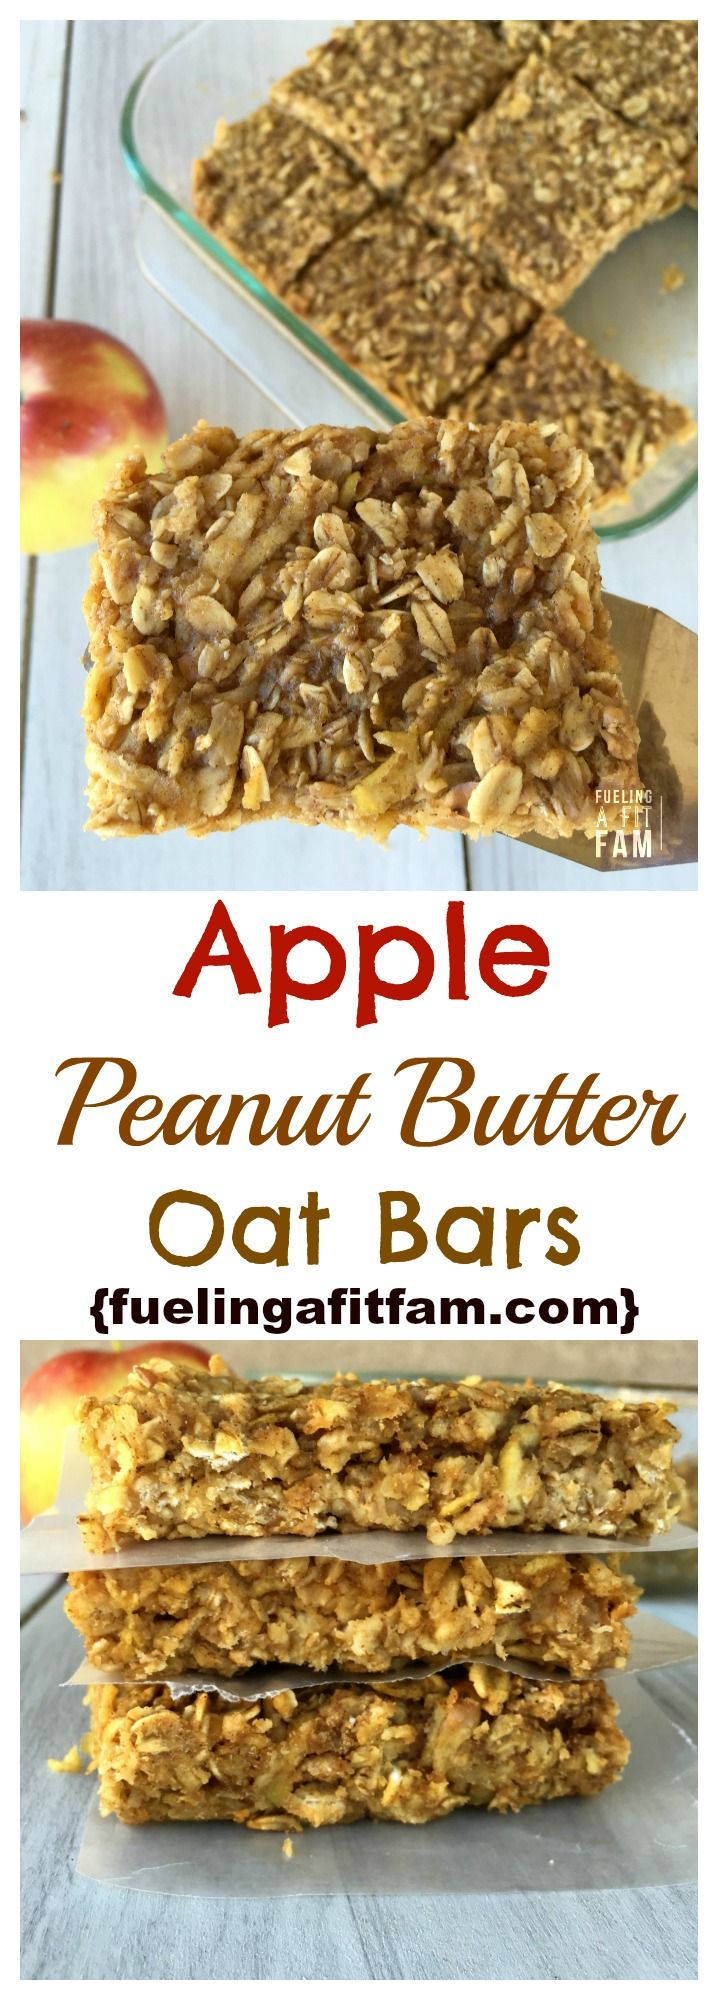 These apple peanut butter bars are healthy, easy and loved by all!